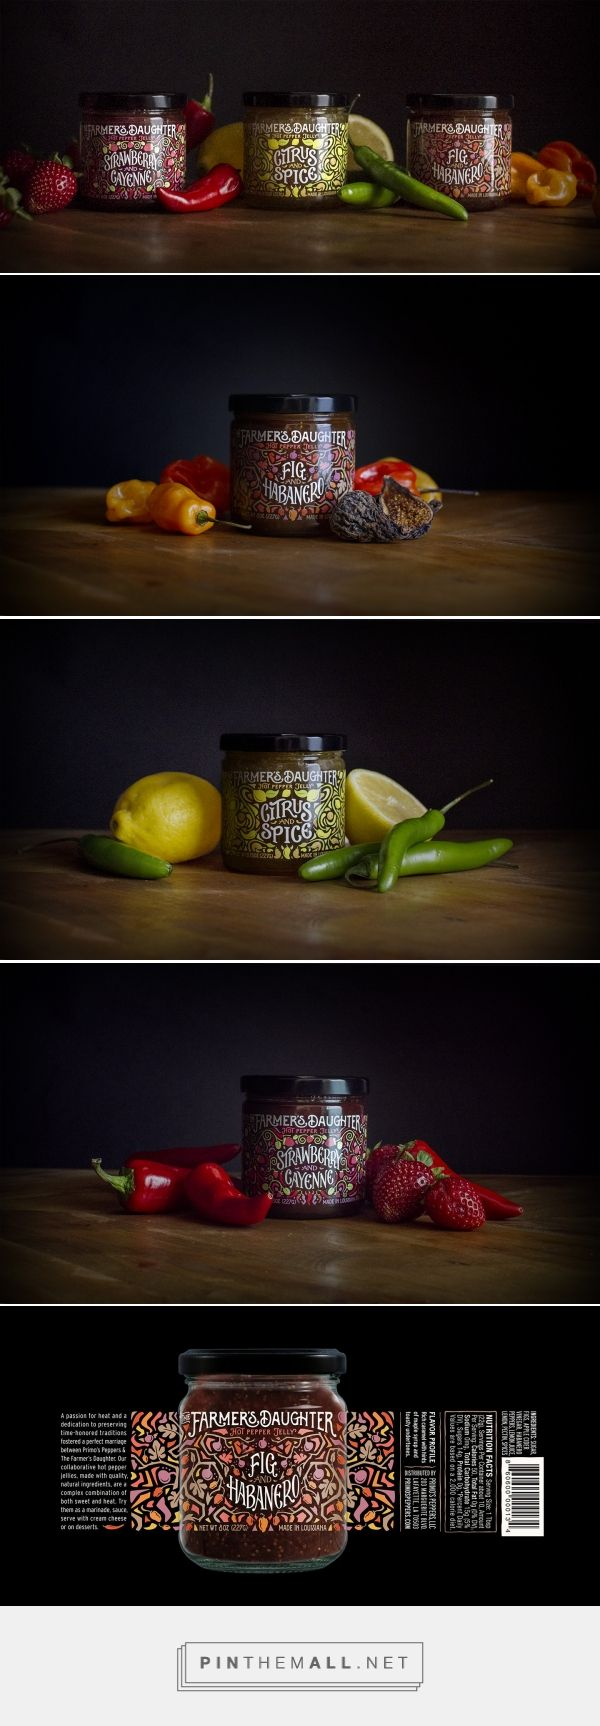 The Farmer's Daughter Hot Pepper Jelly packaging design by The Brandit - http://www.packagingoftheworld.com/2017/06/the-farmers-daughter-hot-pepper-jelly.html - created via https://pinthemall.net